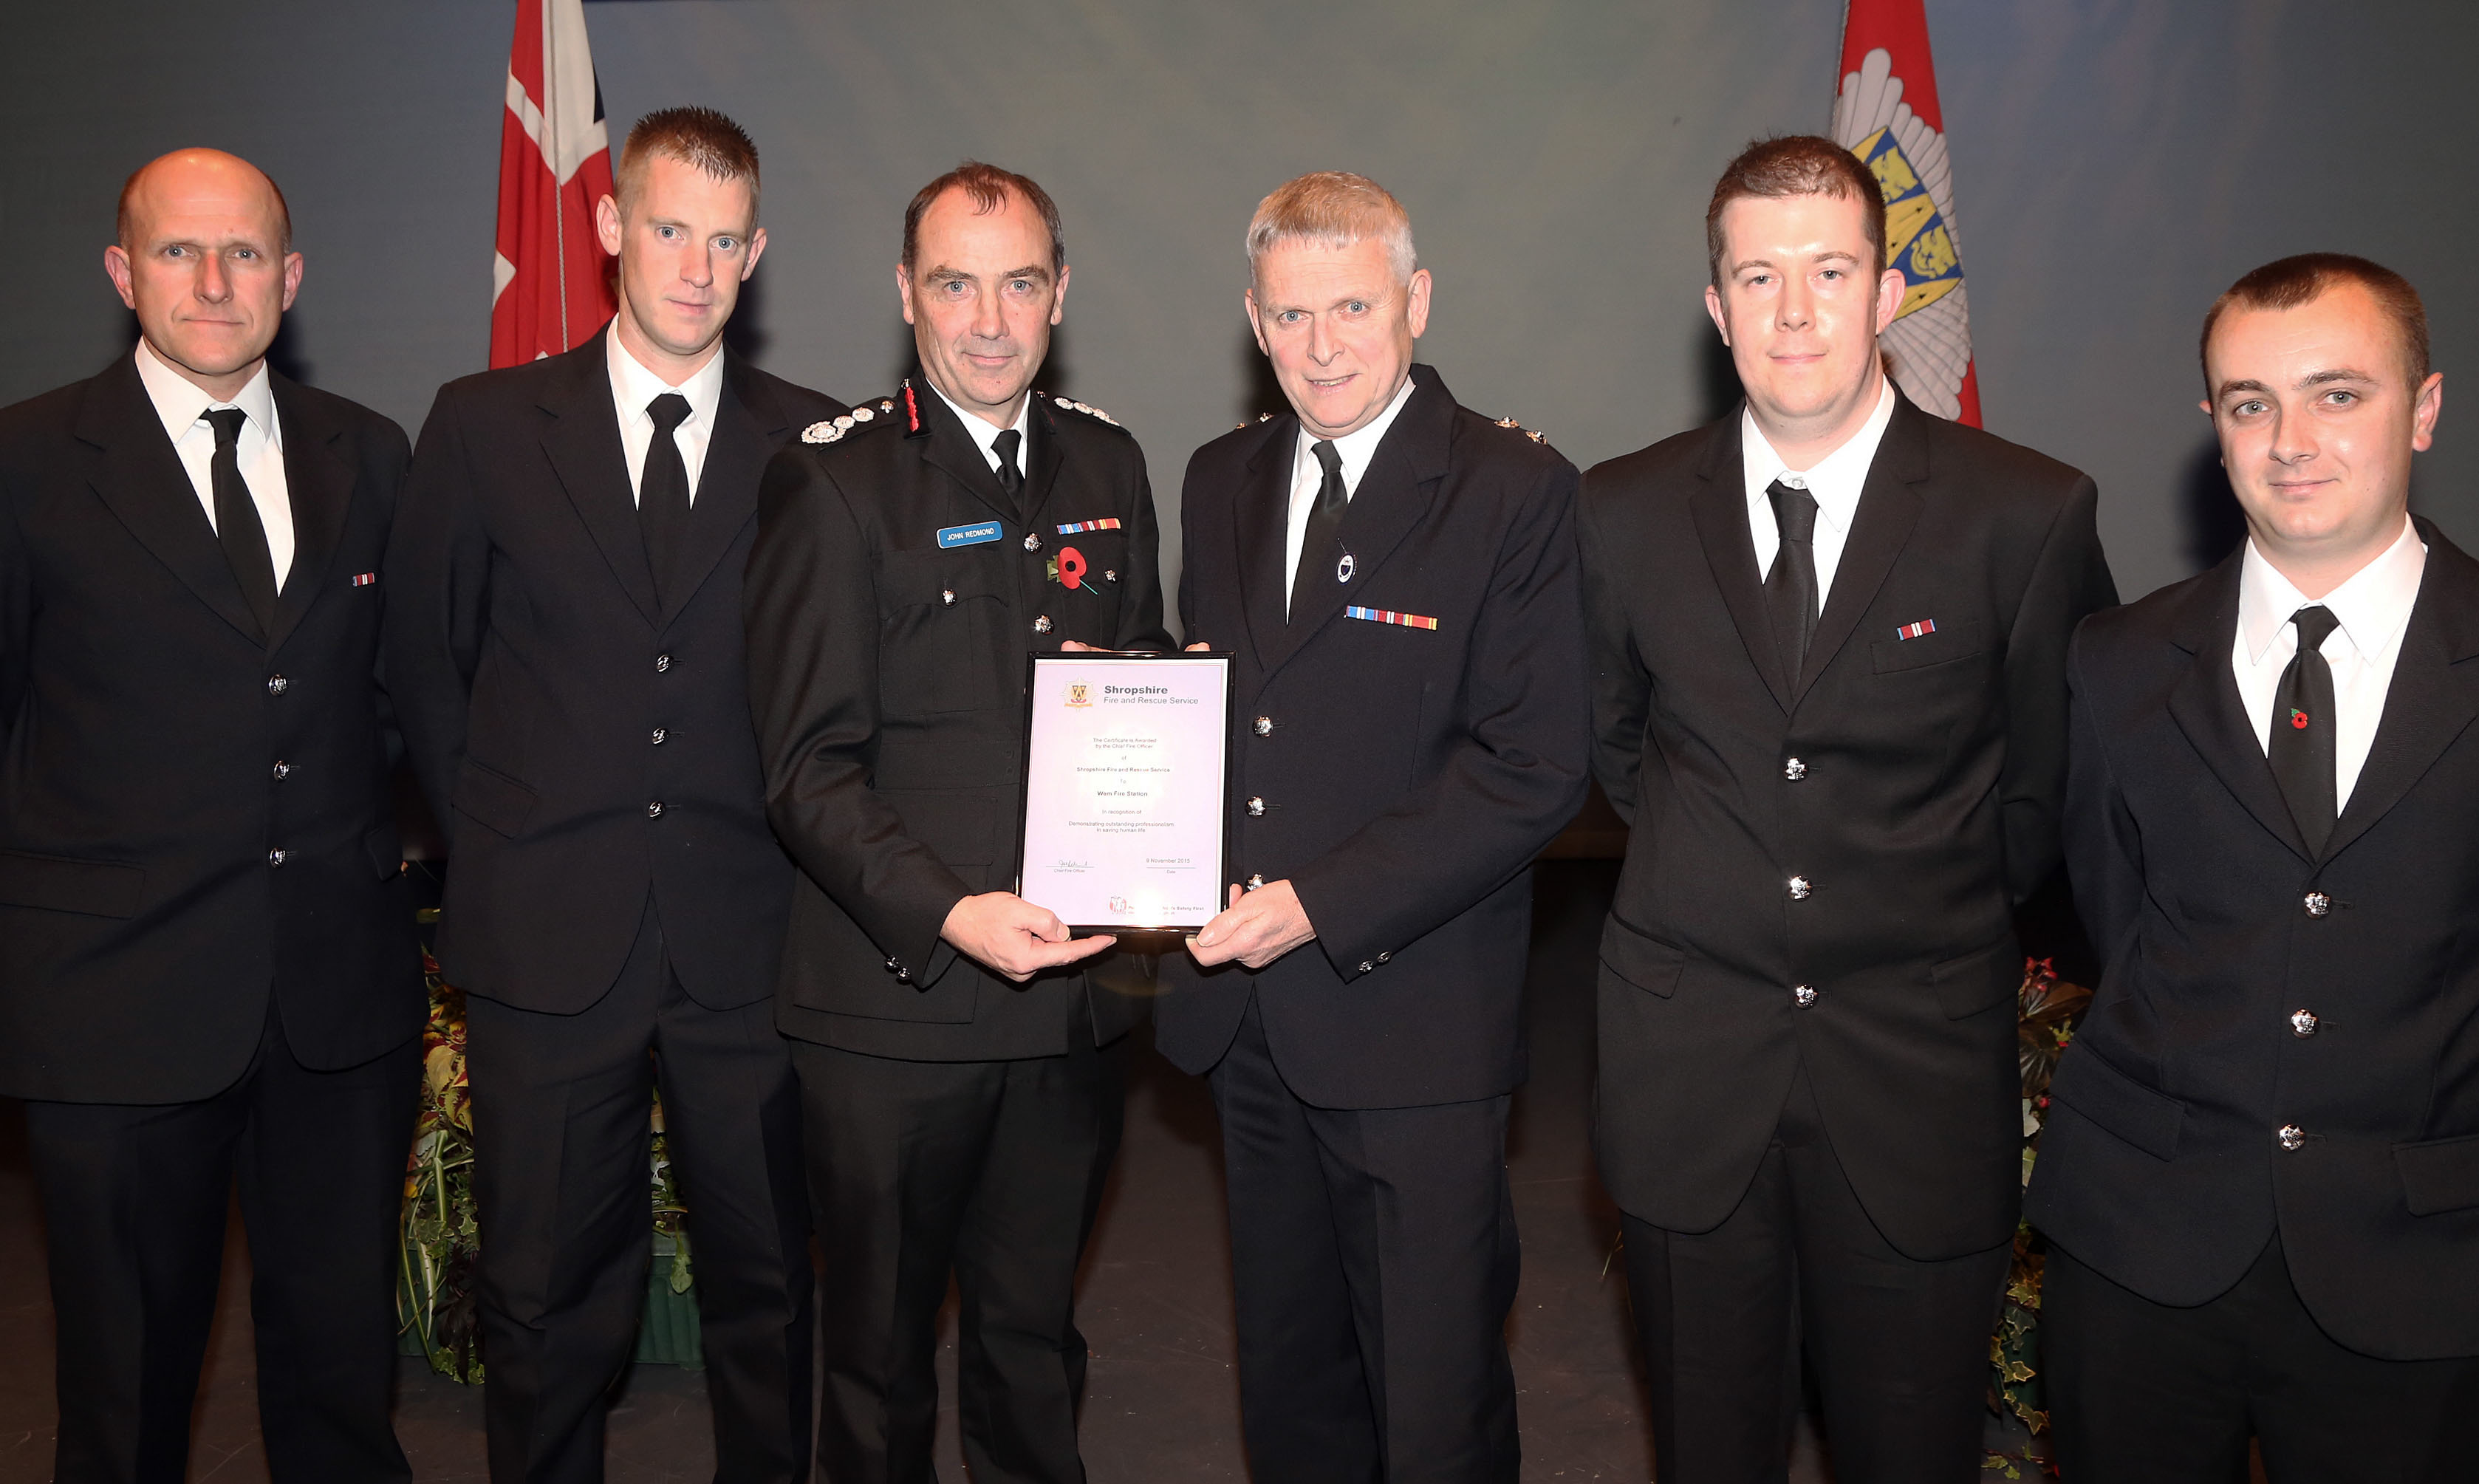 Watch Manager Phil Smith receives the award from Chief Fire Officer John Redmond on behalf of Wem's fire crew for saving a life. Left to right, John Green, Gary France, John Redmond, Phil Smith, Leon Turner and Darren Jones.  Vic Young (not pictured) was also involved in the rescue.